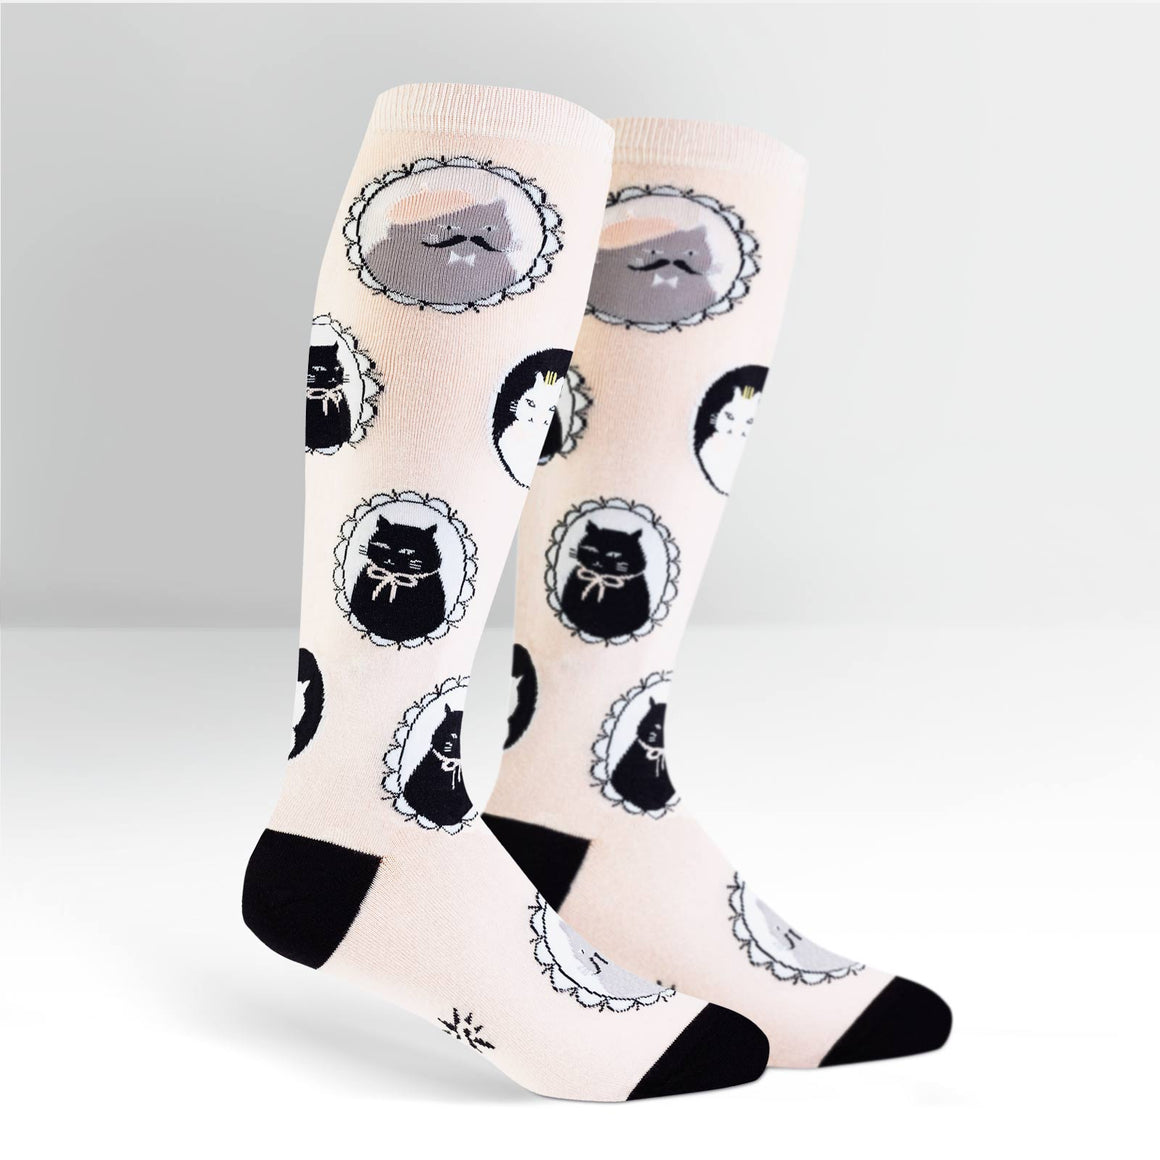 Cameow Socks by Sock it To Me - Compassionate Closet